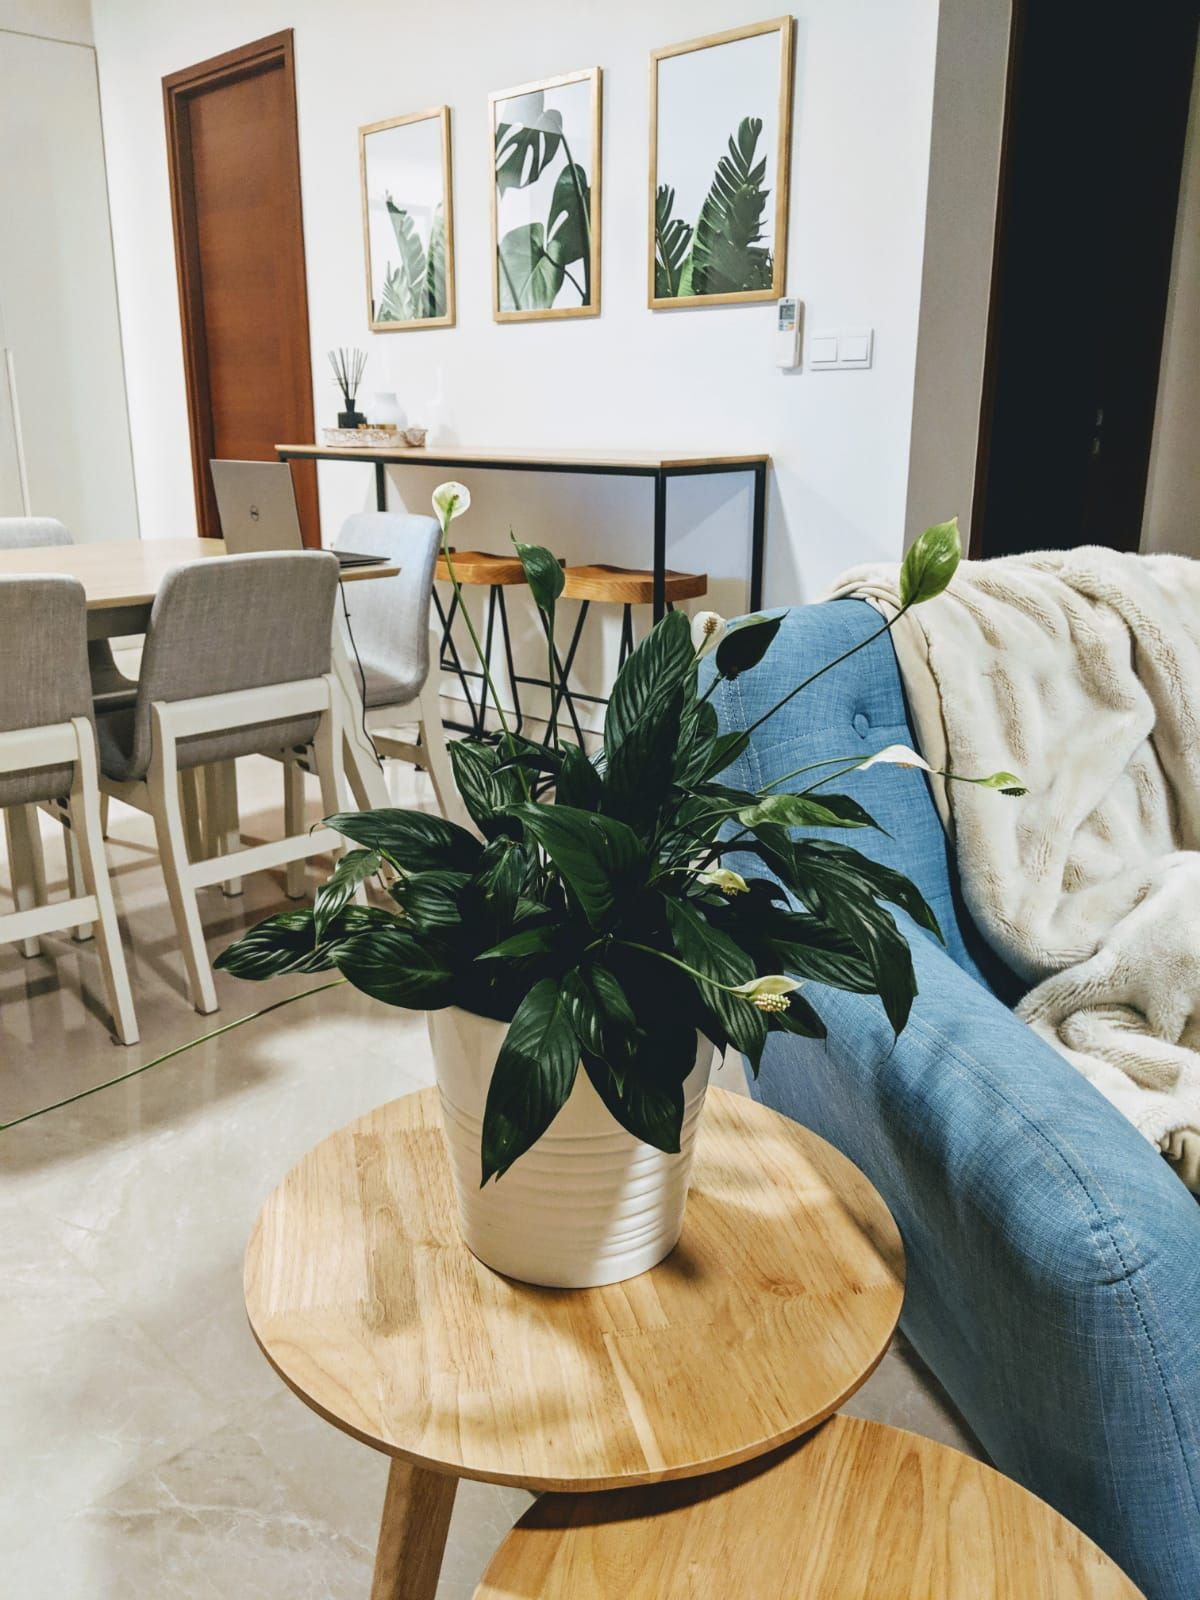 A good house plant is the peace lily scandinavian